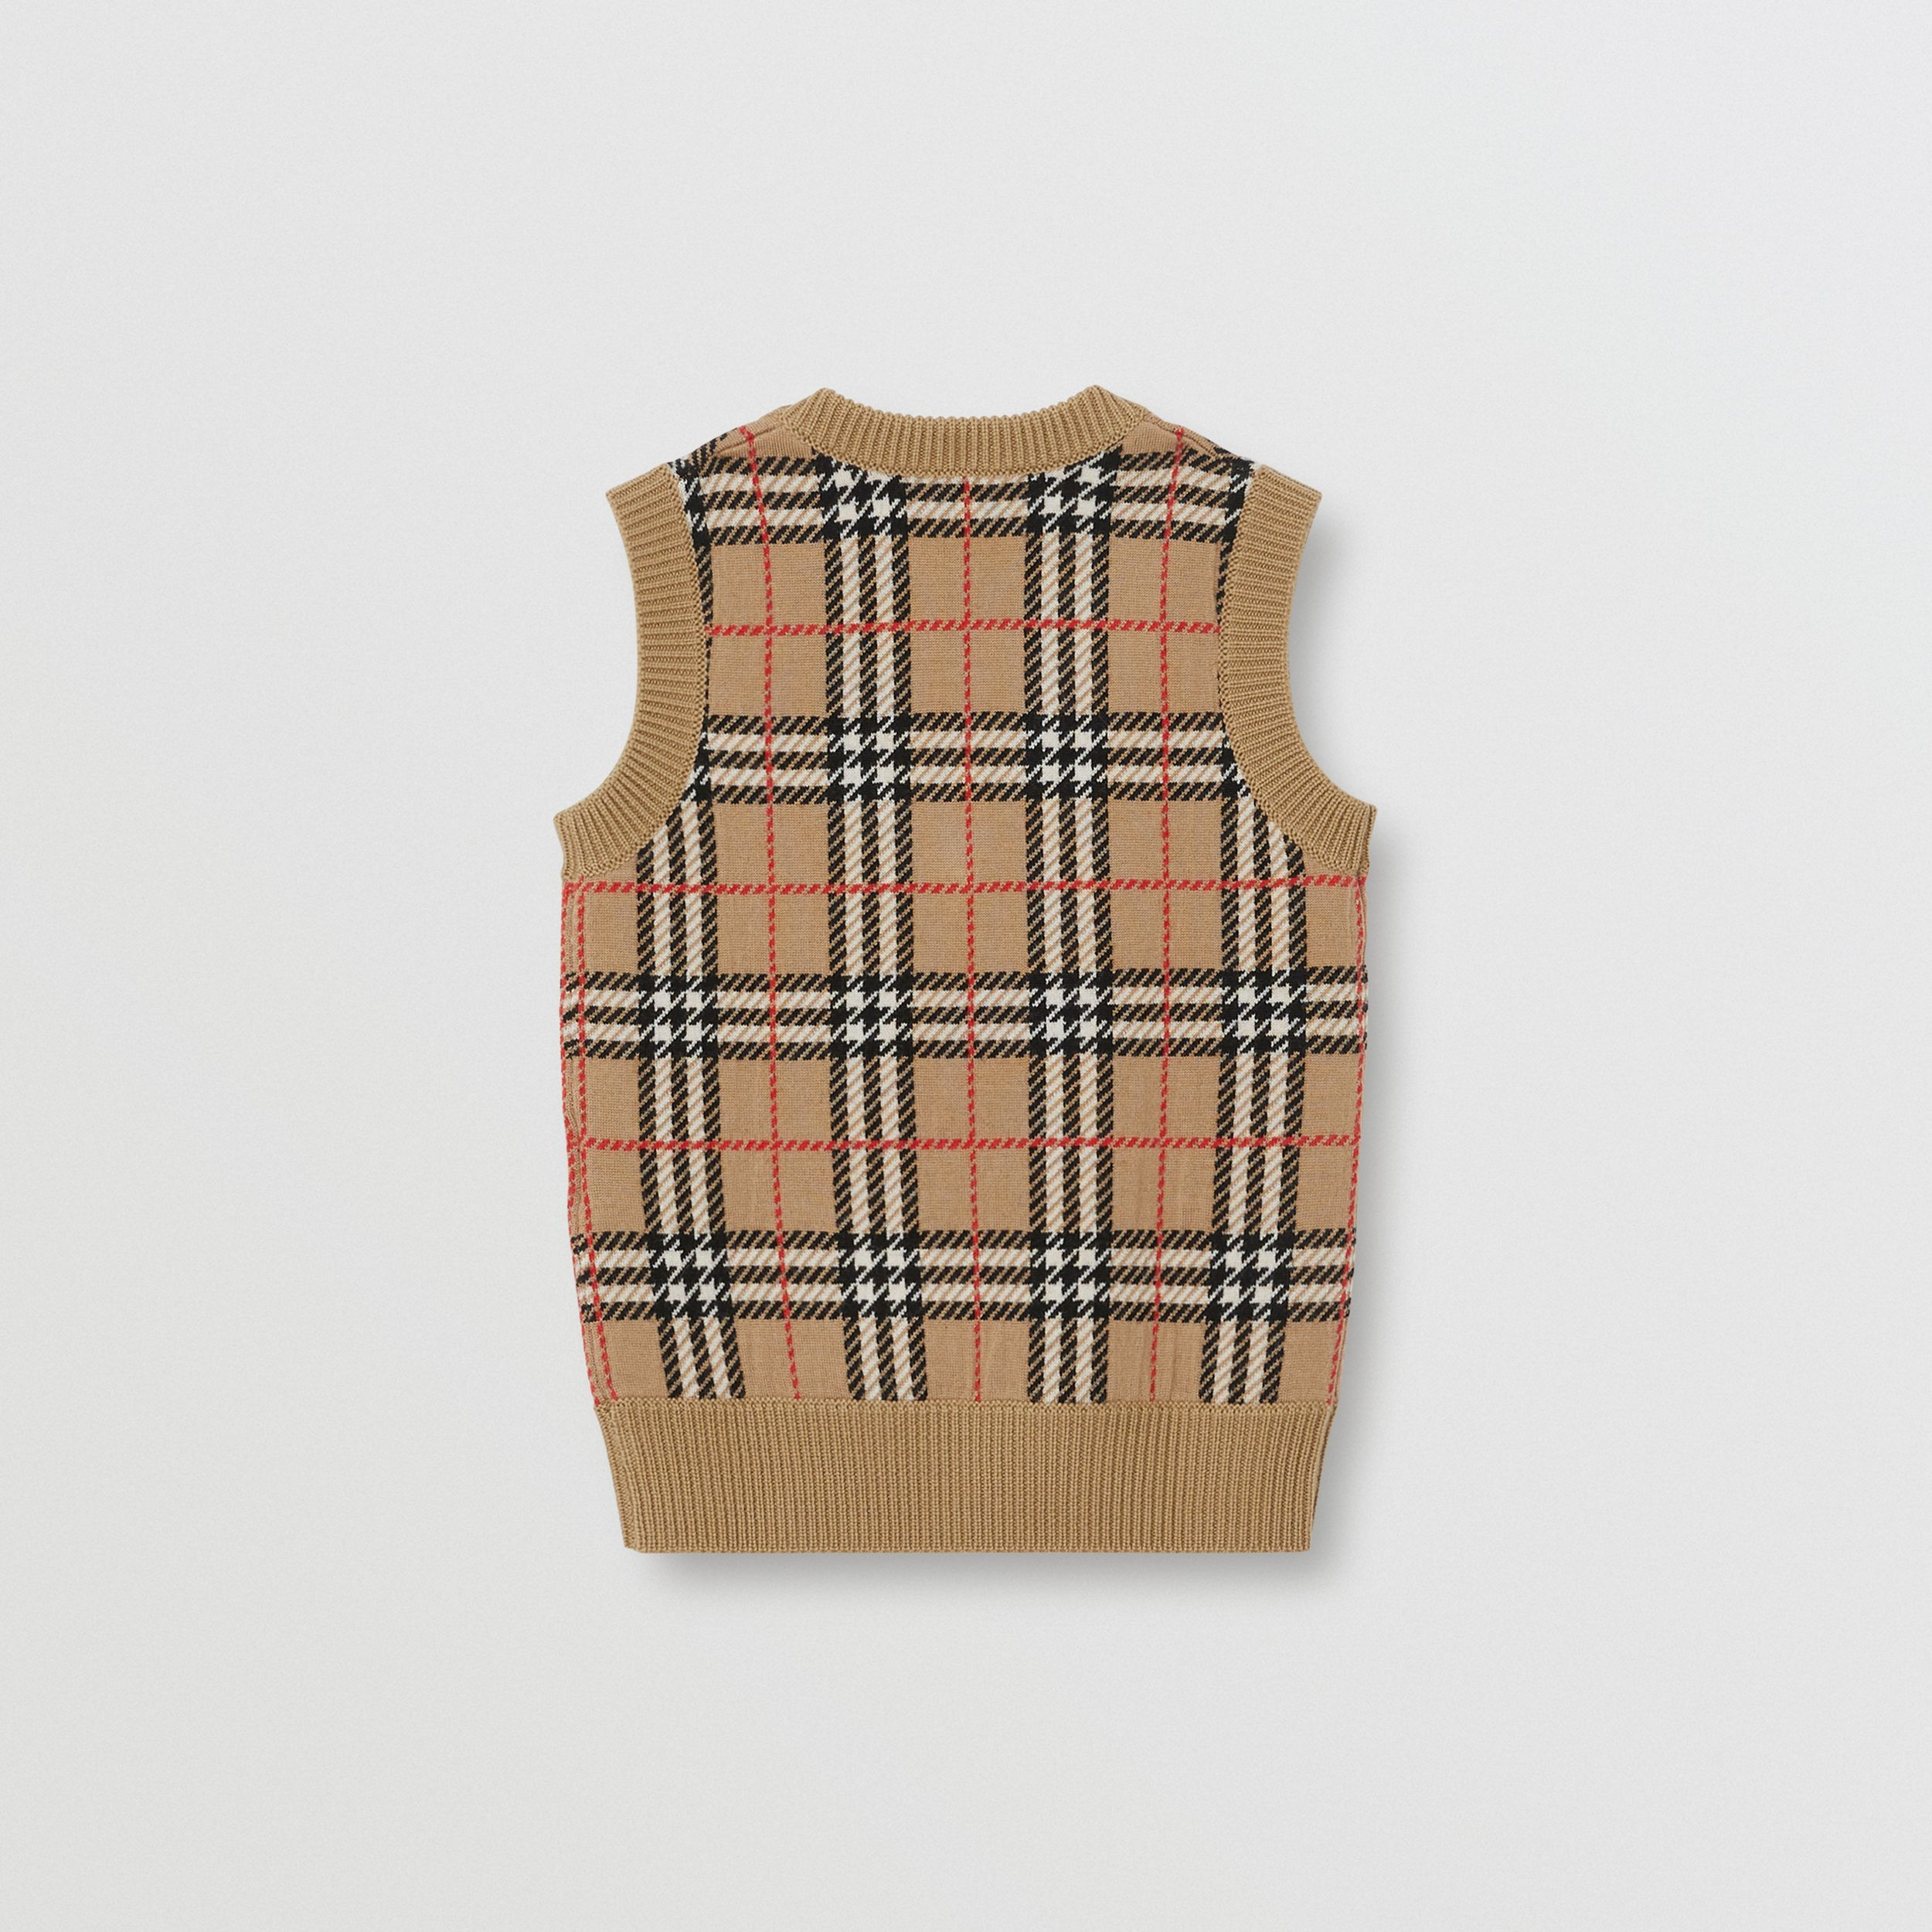 Check Merino Wool Jacquard Vest in Archive Beige | Burberry United States - 3